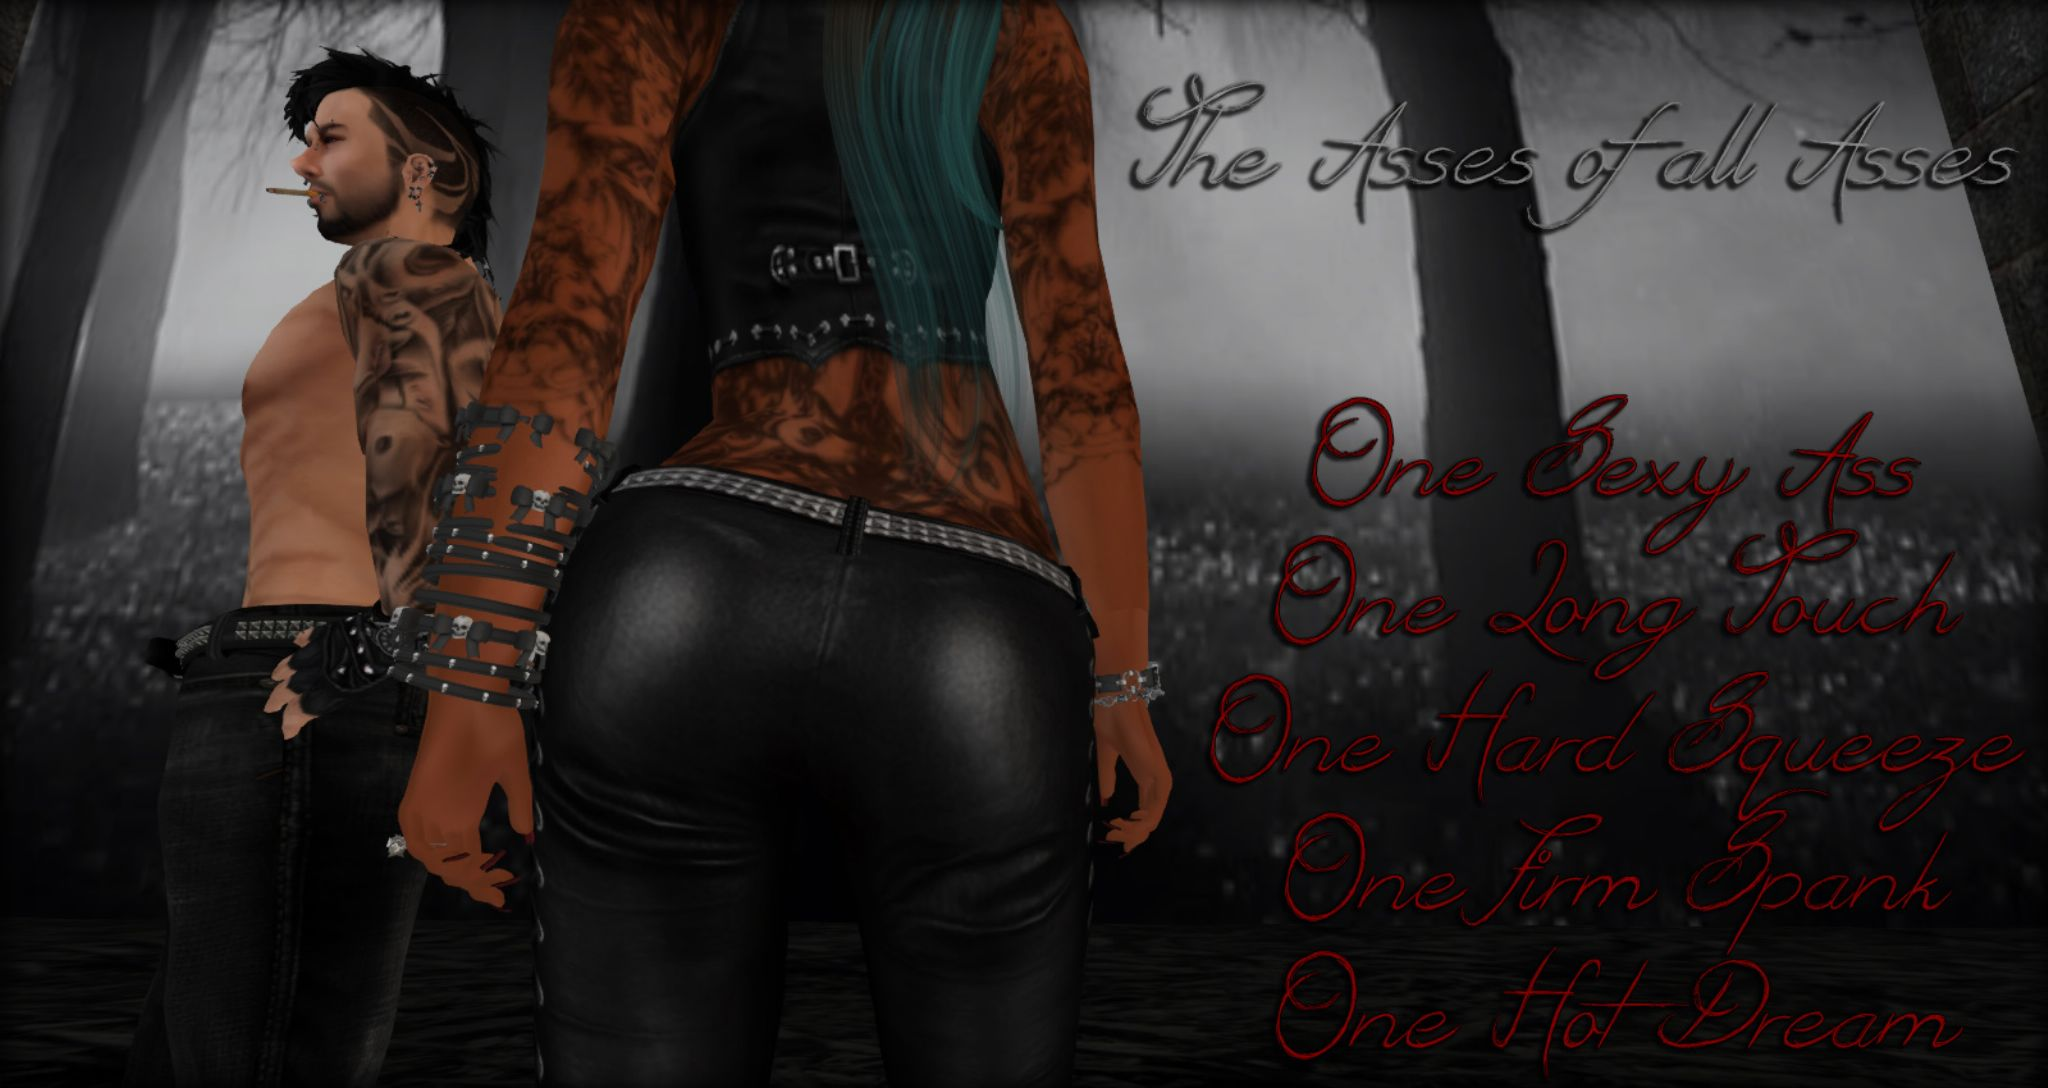 The Asses of all Asses by Wrath Constantine